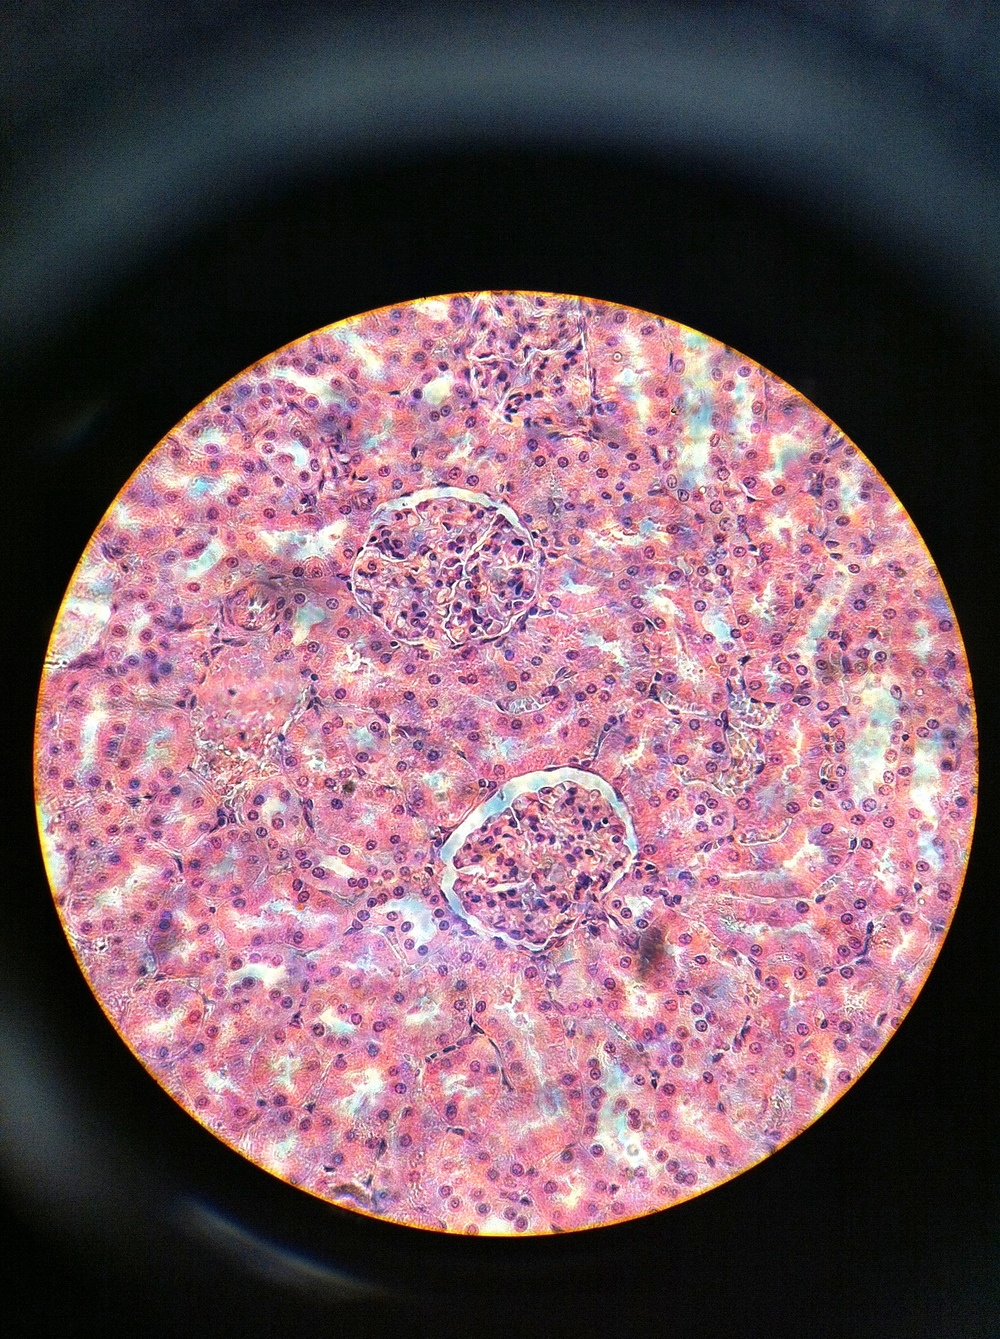 Renal Corpuscle 400X